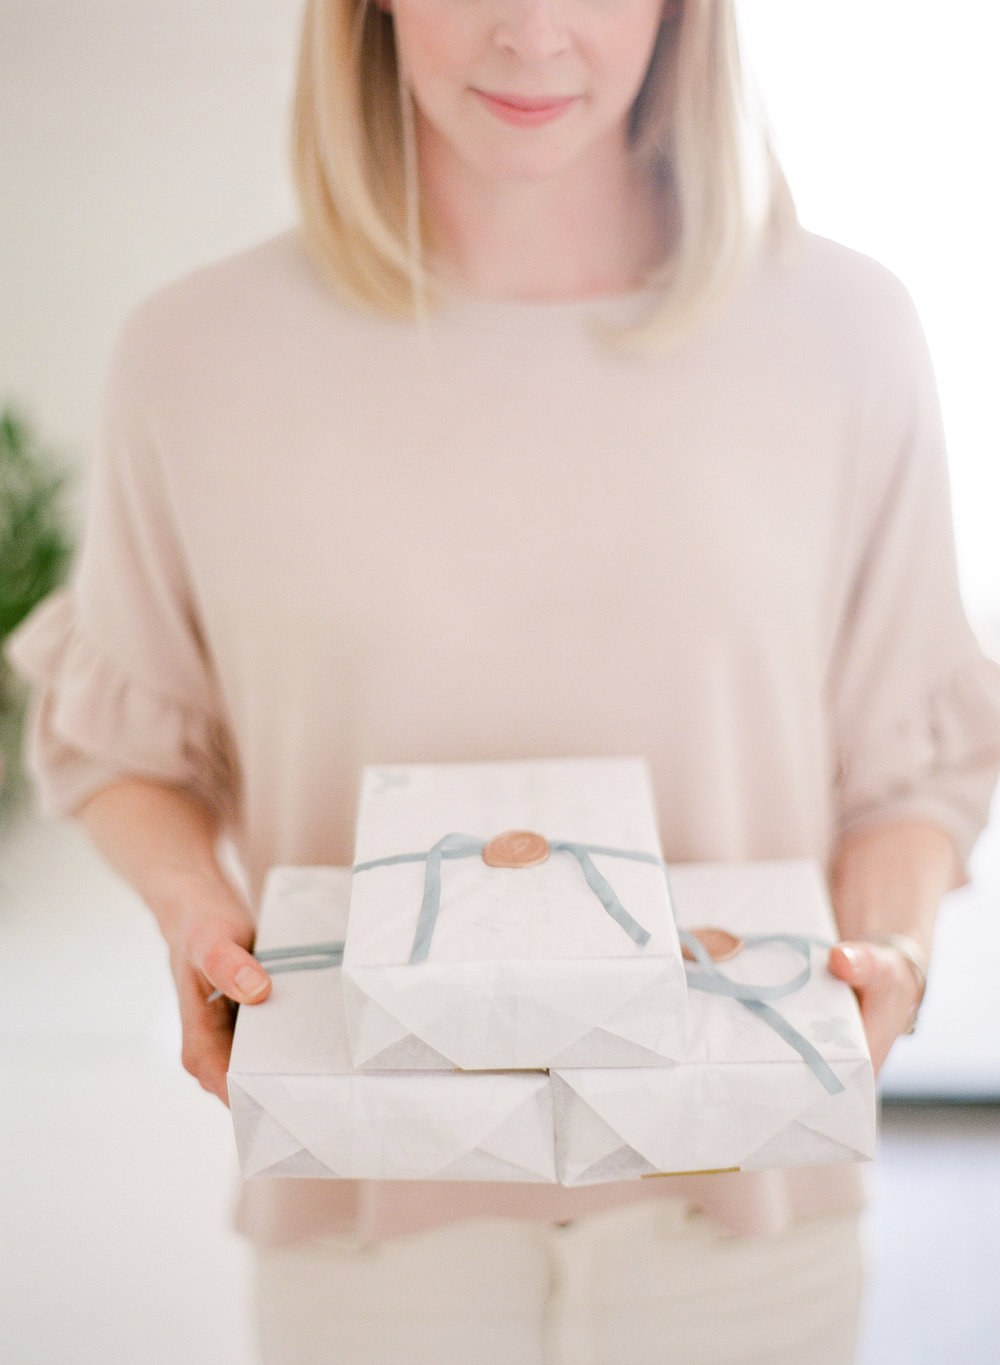 When we ship out a completed suite each piece is carefully wrapped in tissue and ribbon (with our own sable and gray seal!) to make it even more special when it arrives.